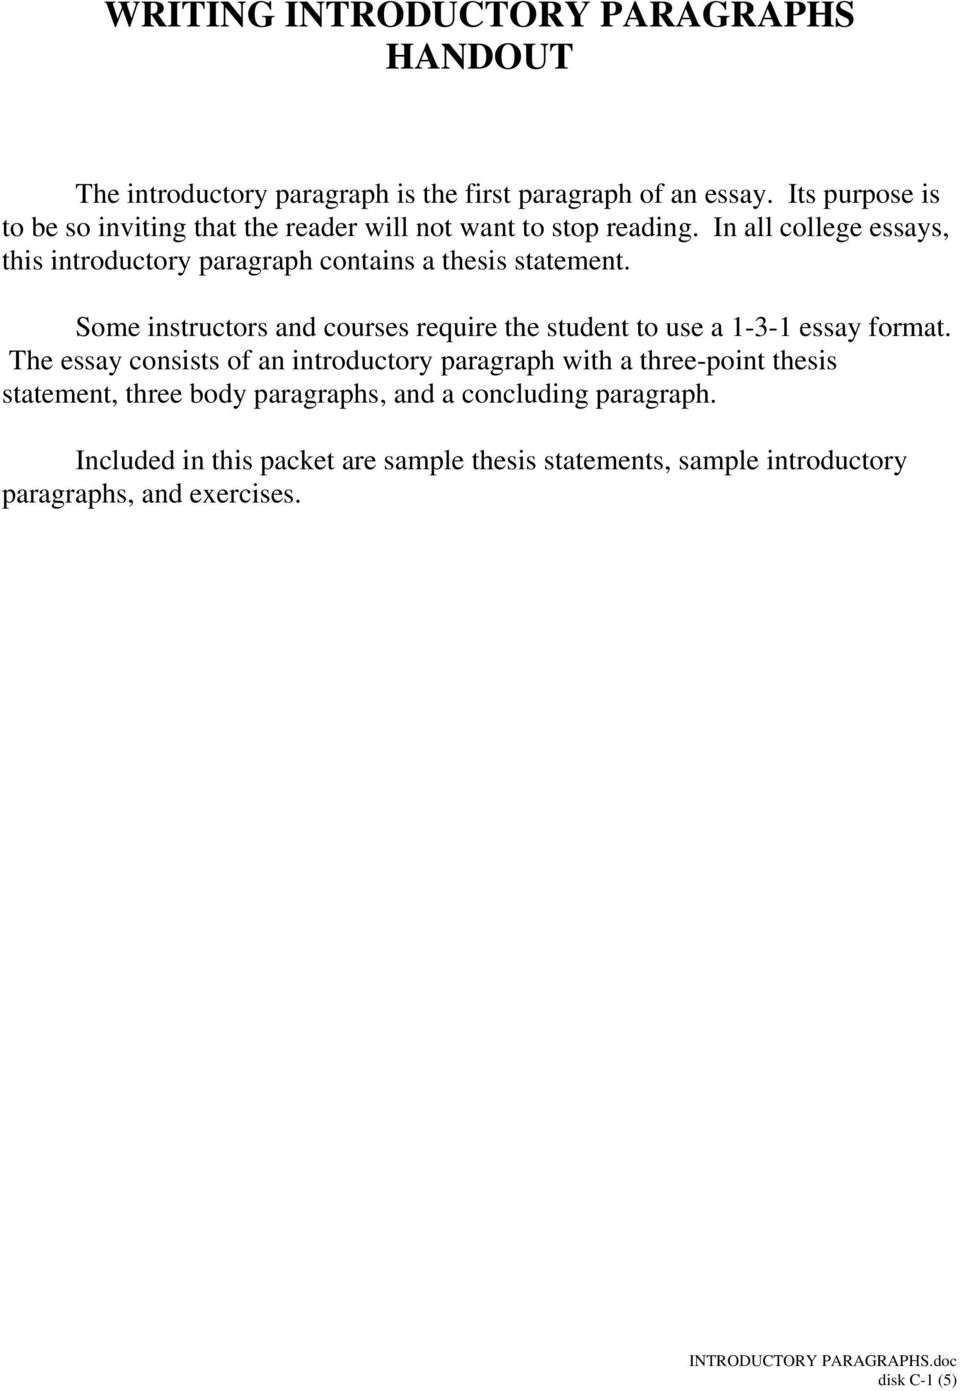 how to conclude an introductory paragraph